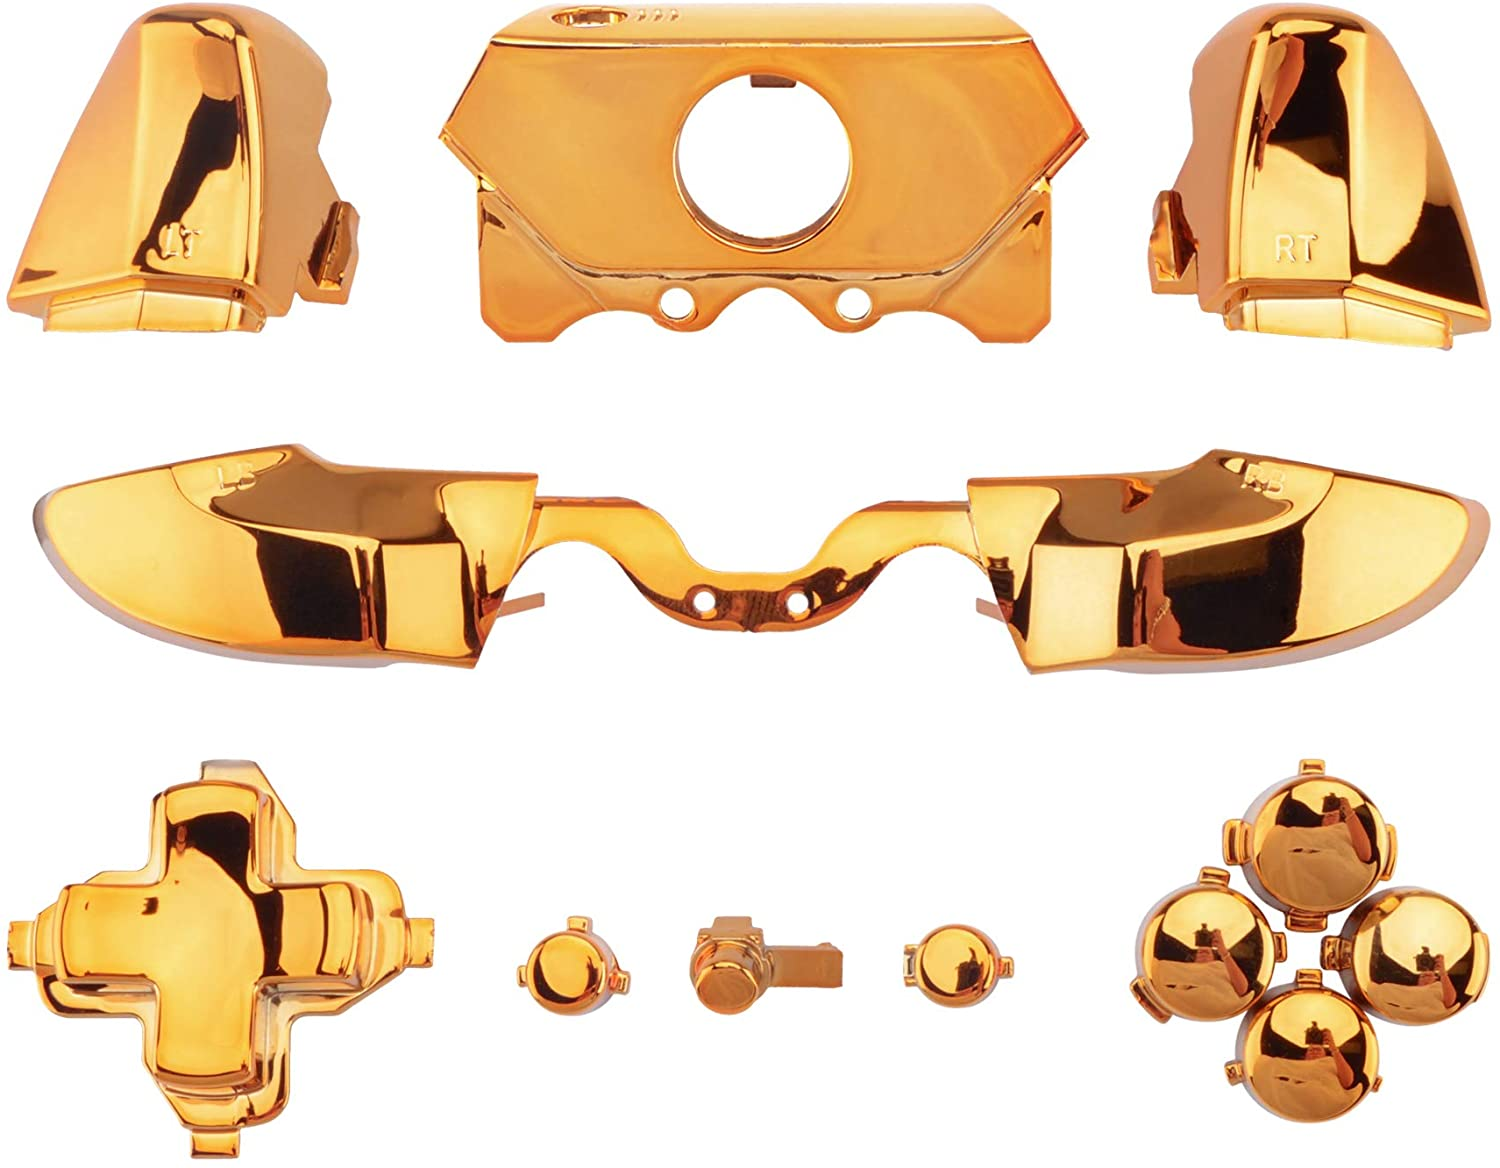 eXtremeRate LB RB LT RT Bumpers Triggers D-Pad ABXY Start Back Sync Buttons, Chrome Gold Full Set Buttons Repair Kits with Tools for Xbox One Standard & Xbox One Elite V1 Controller (Model 1697/1698)